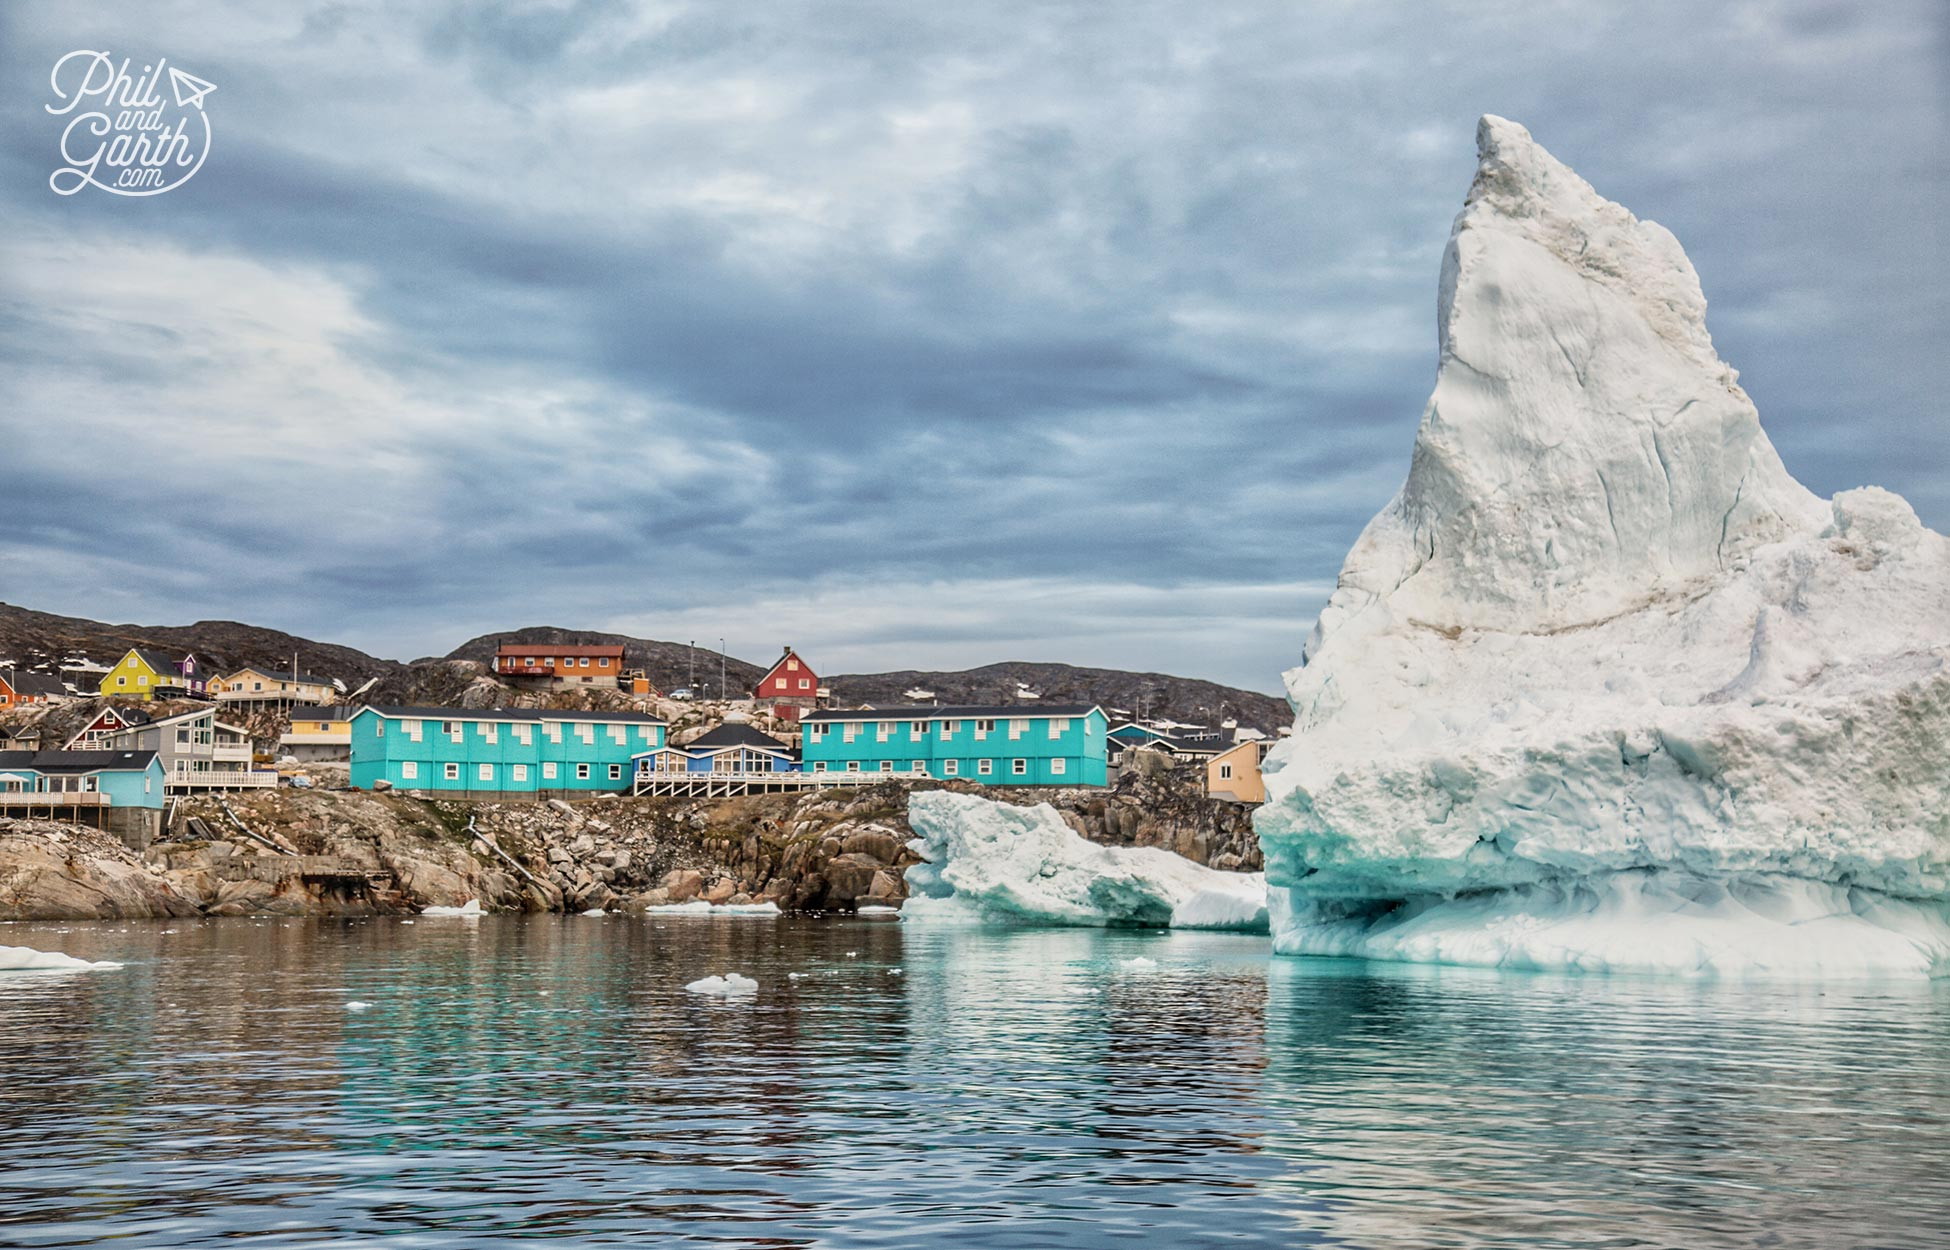 Passing Ilulissat homes and icebergs in Disko Bay